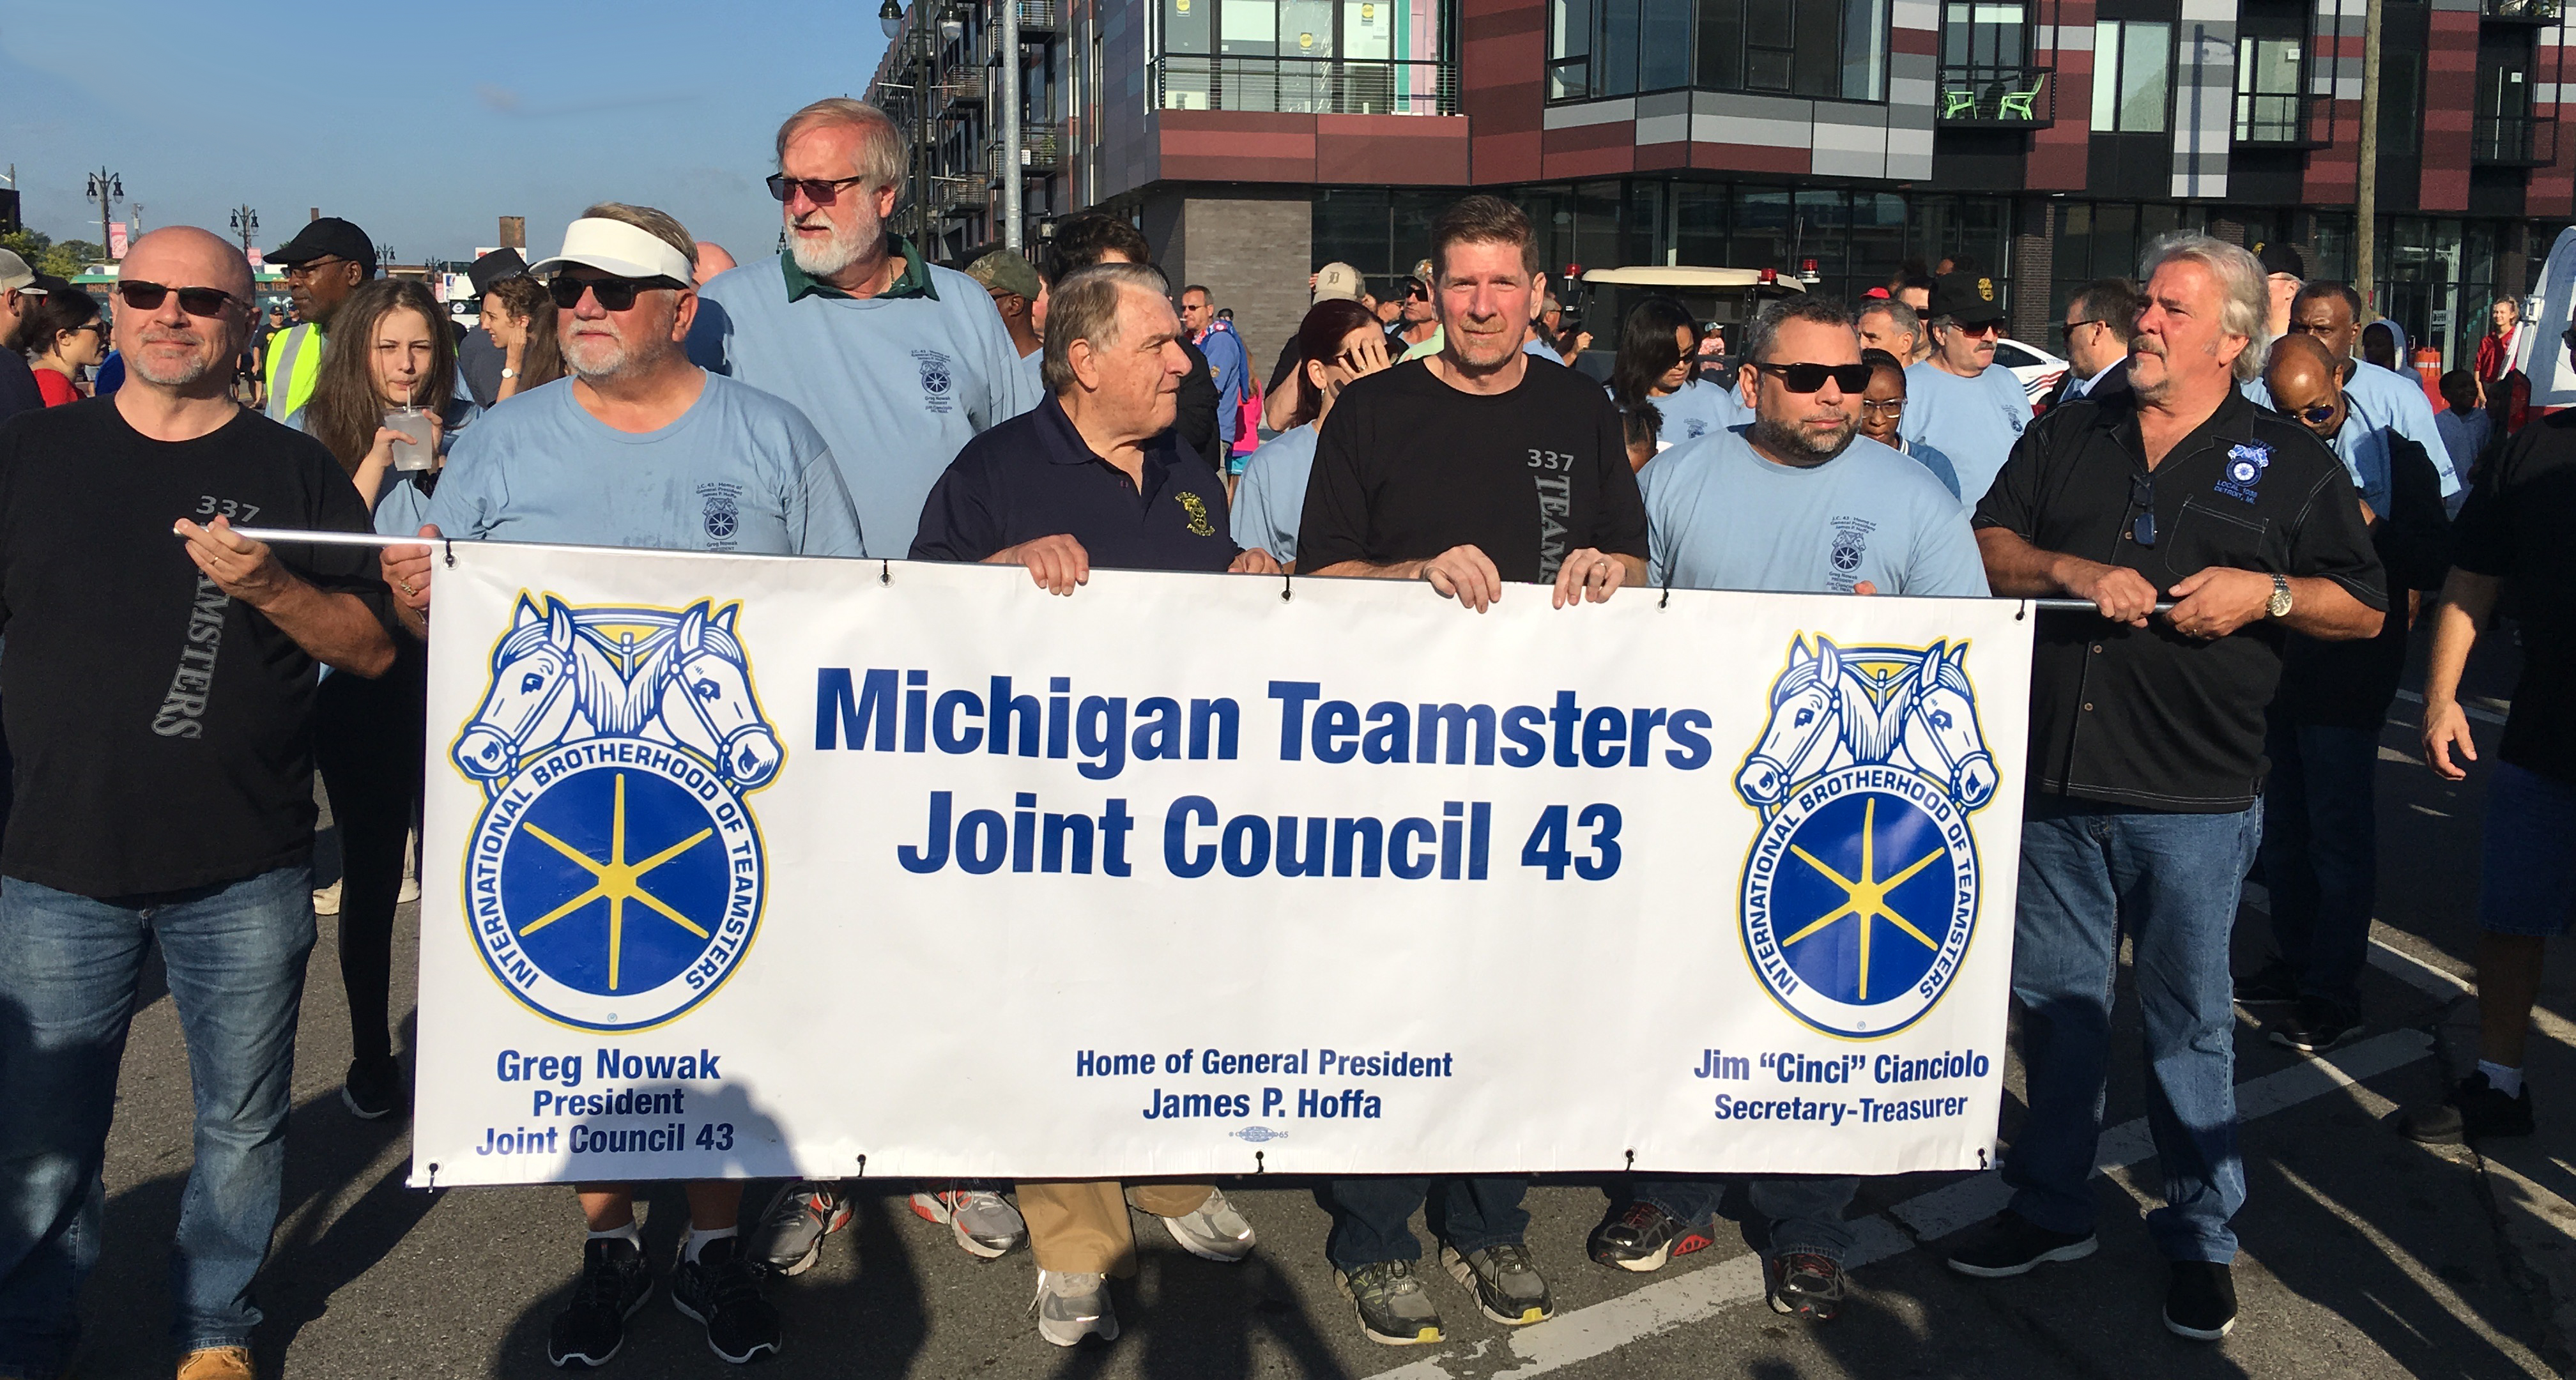 Teamsters Joint Council #43